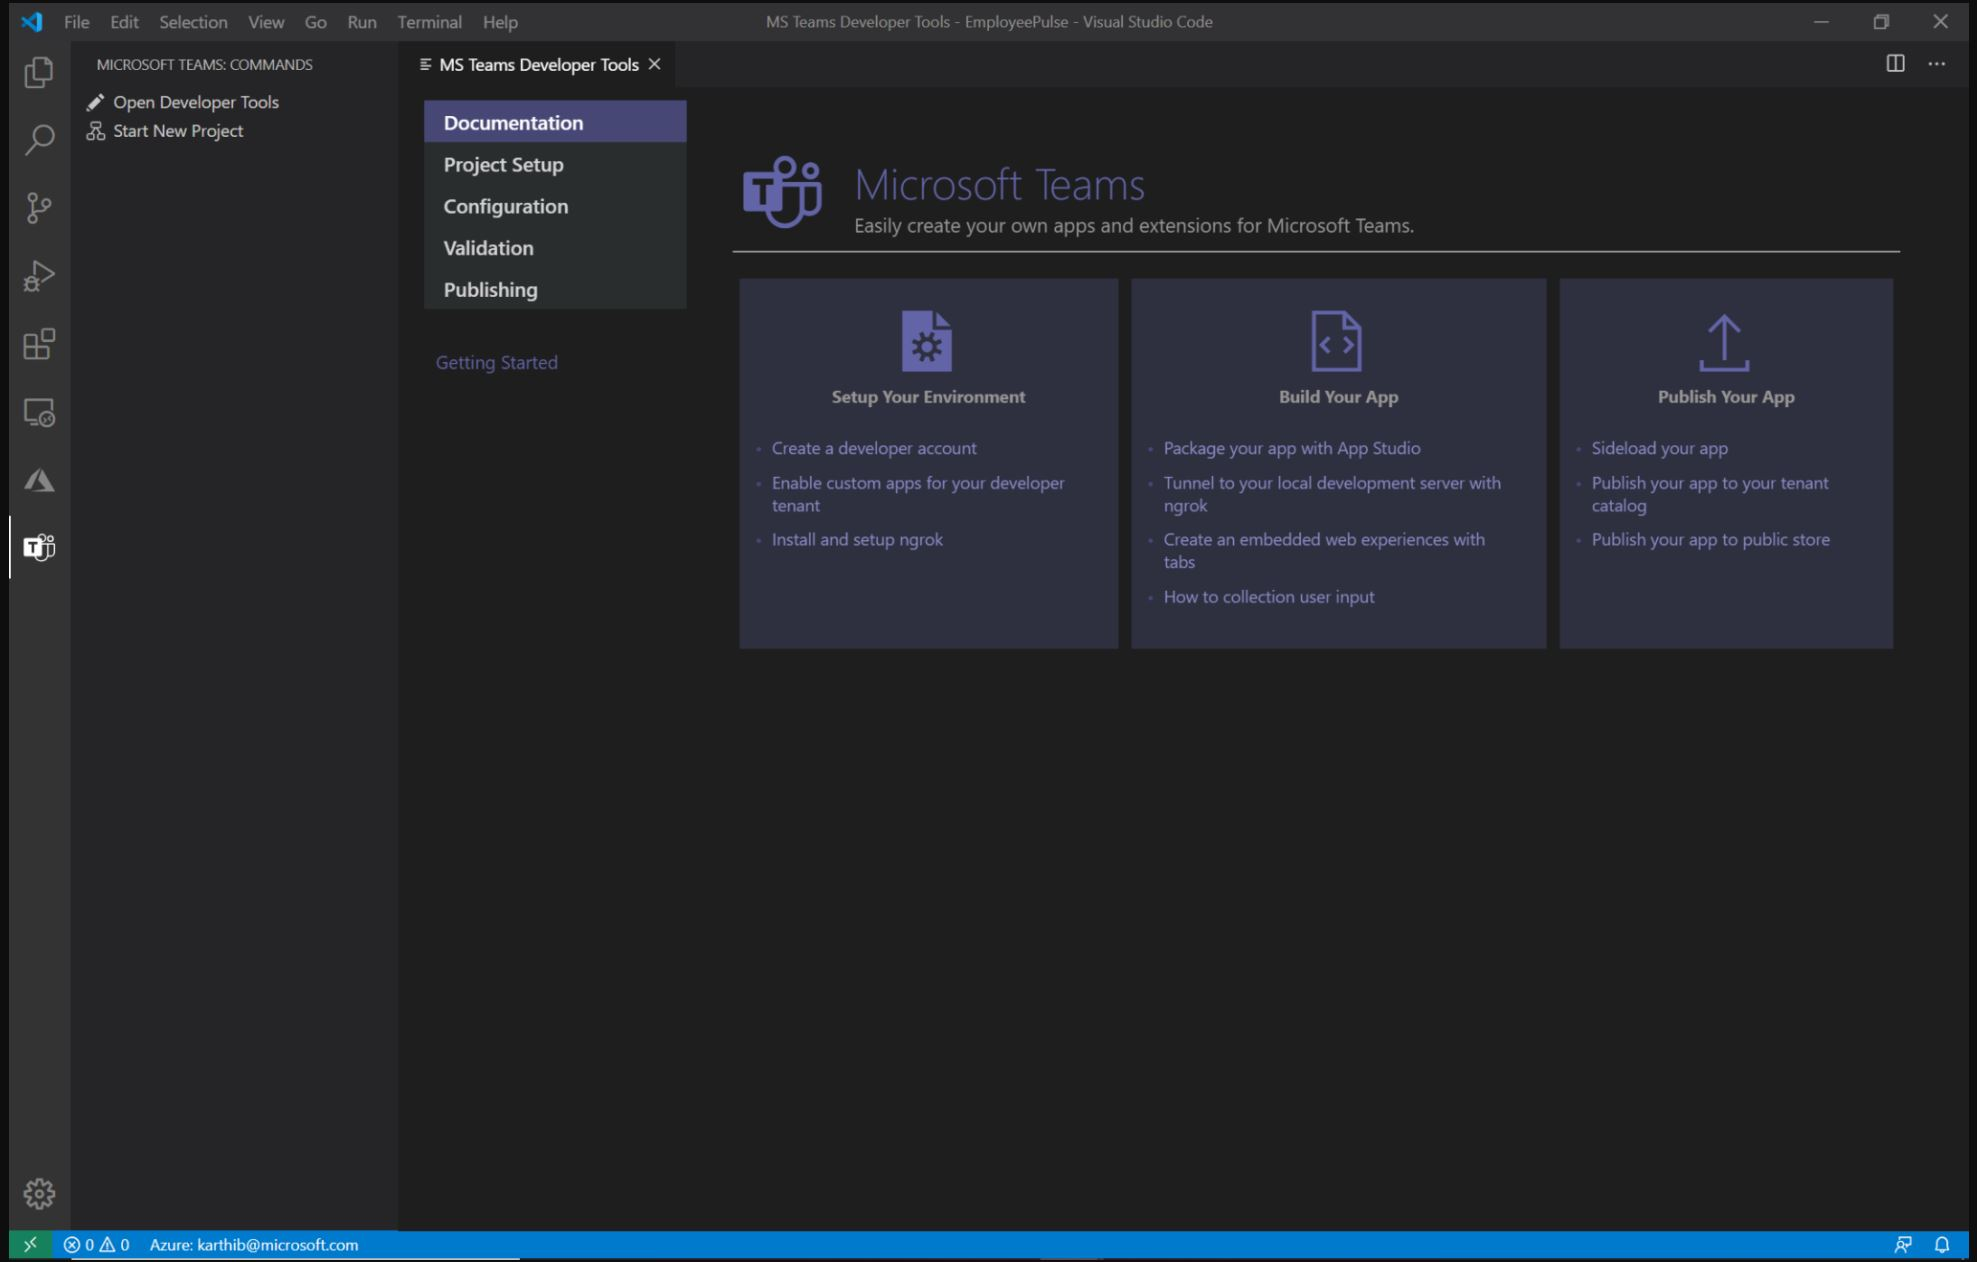 Microsoft Teams Toolkit